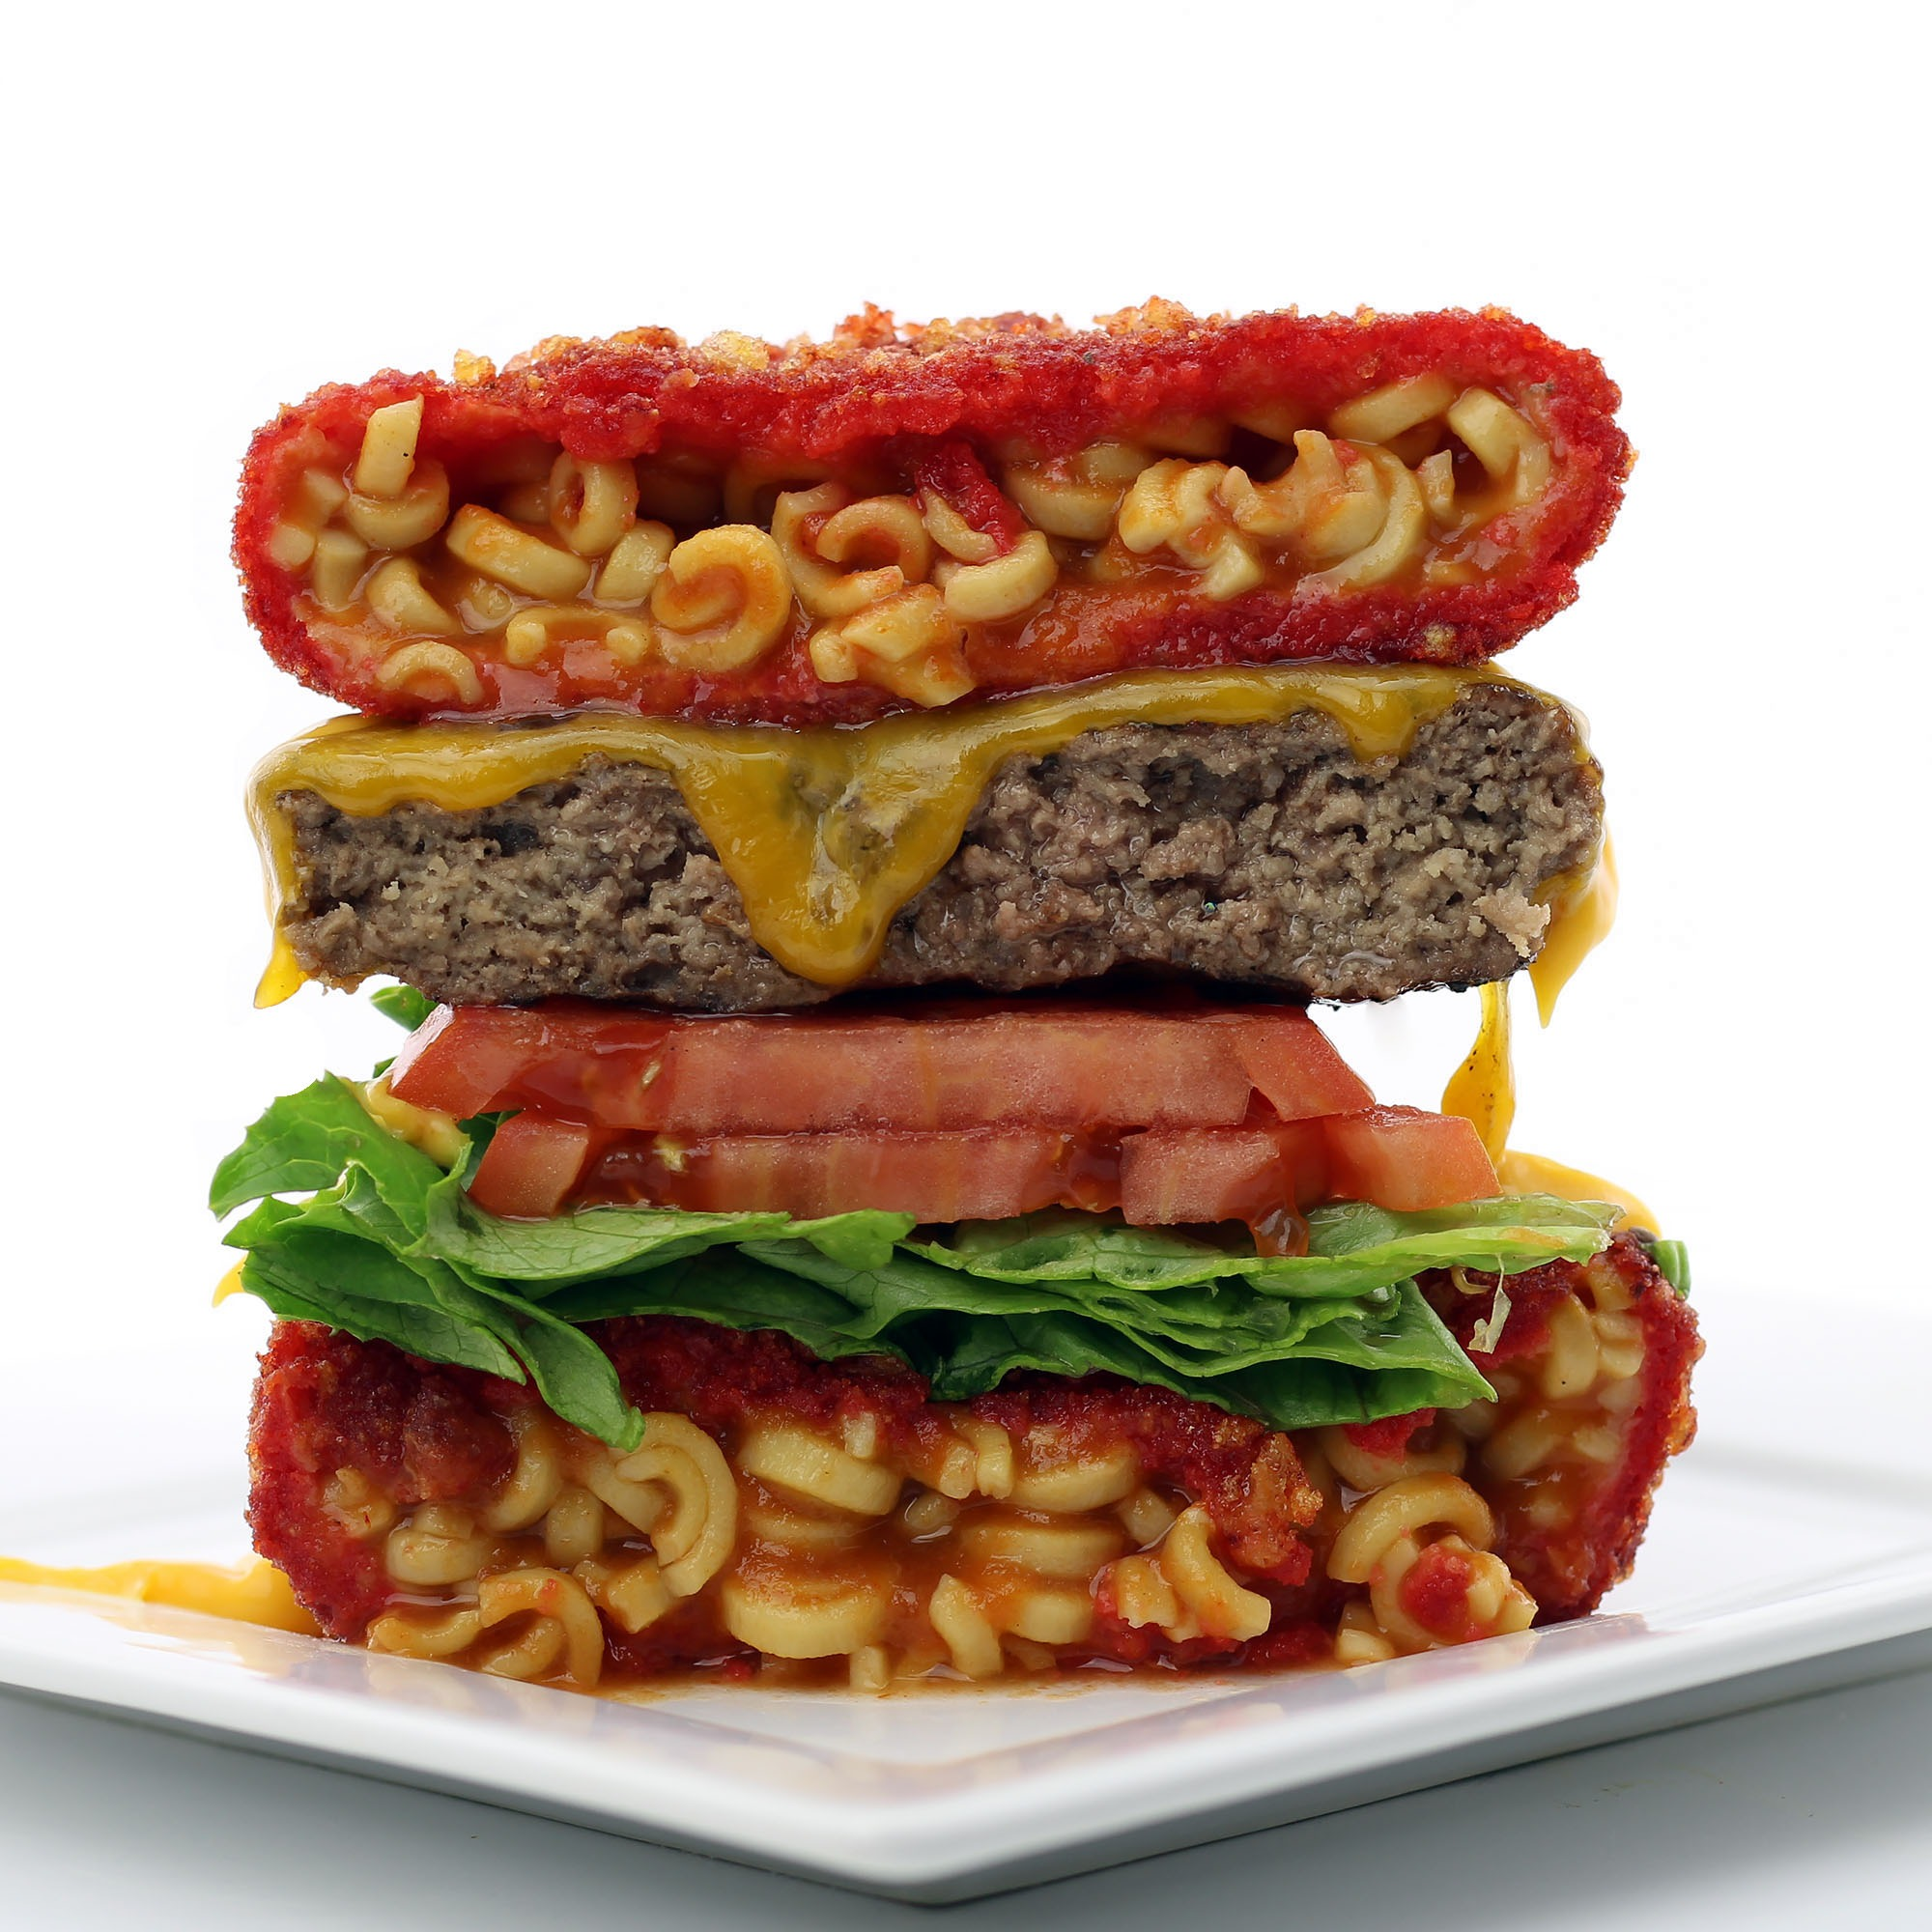 The SpaghettiOs Burger Bun